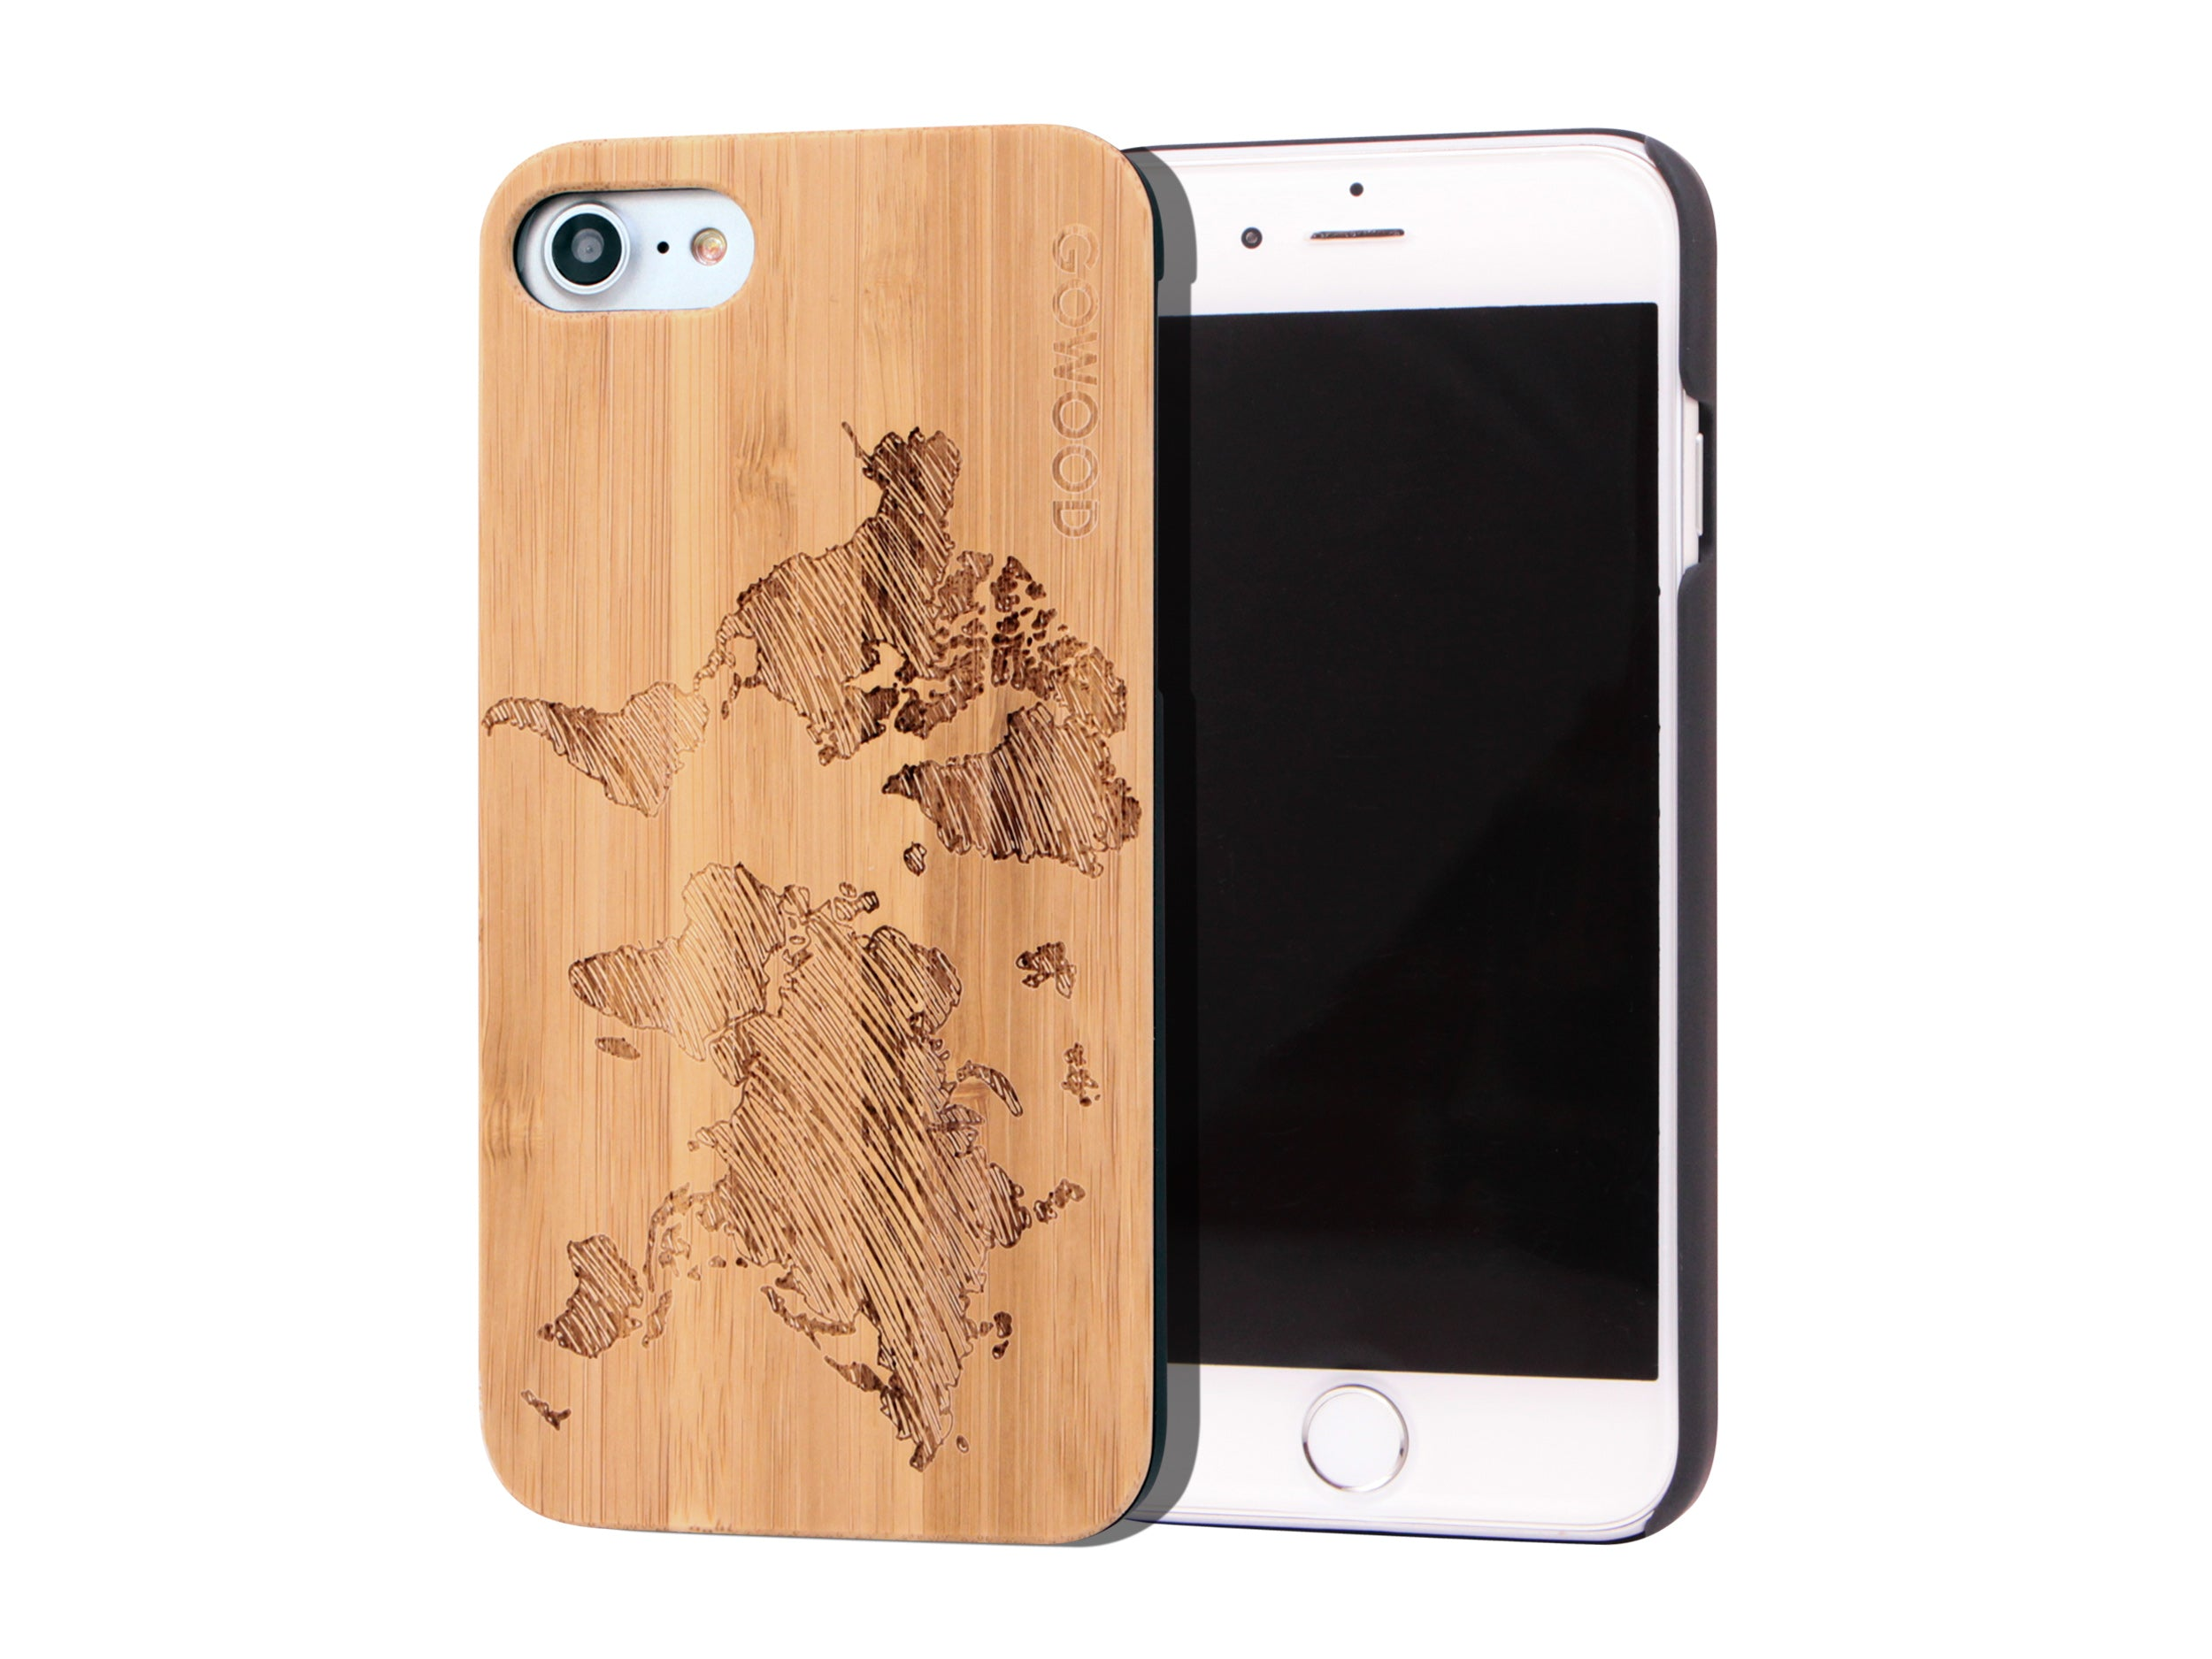 coque 20iphone 206 20carte 20du 20monde 20bois 827lxq 2500x